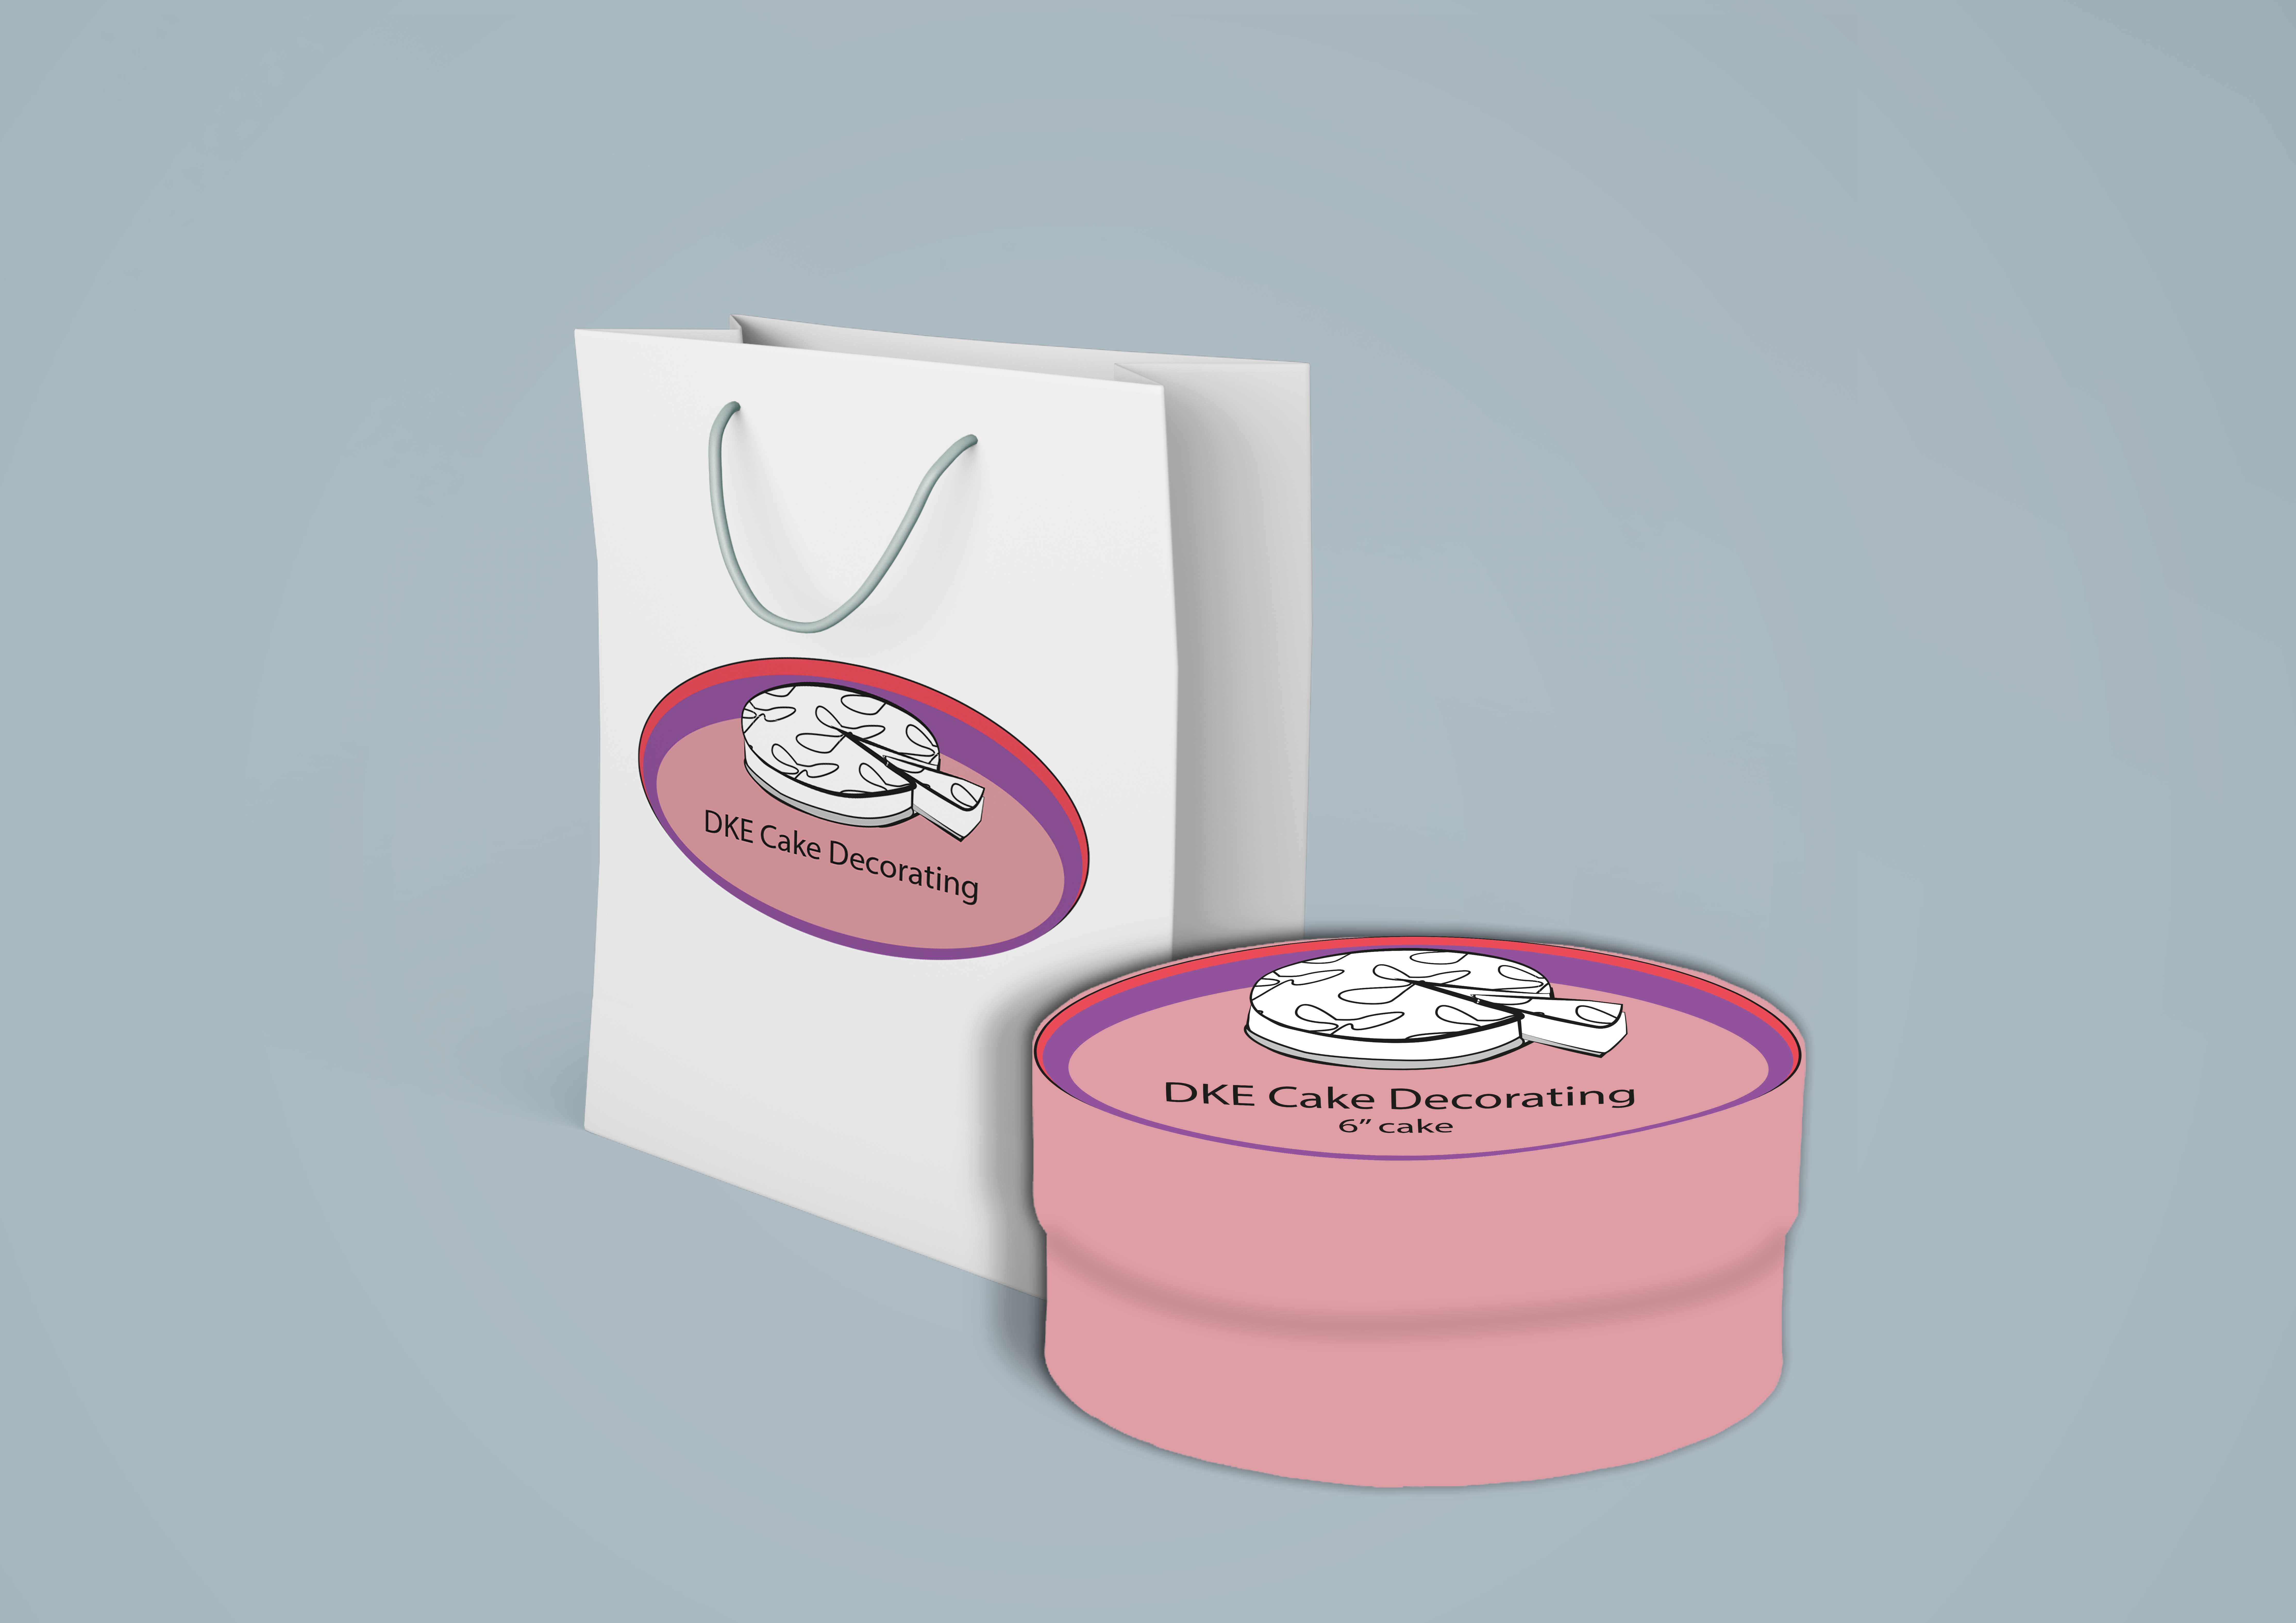 Cake Label Design